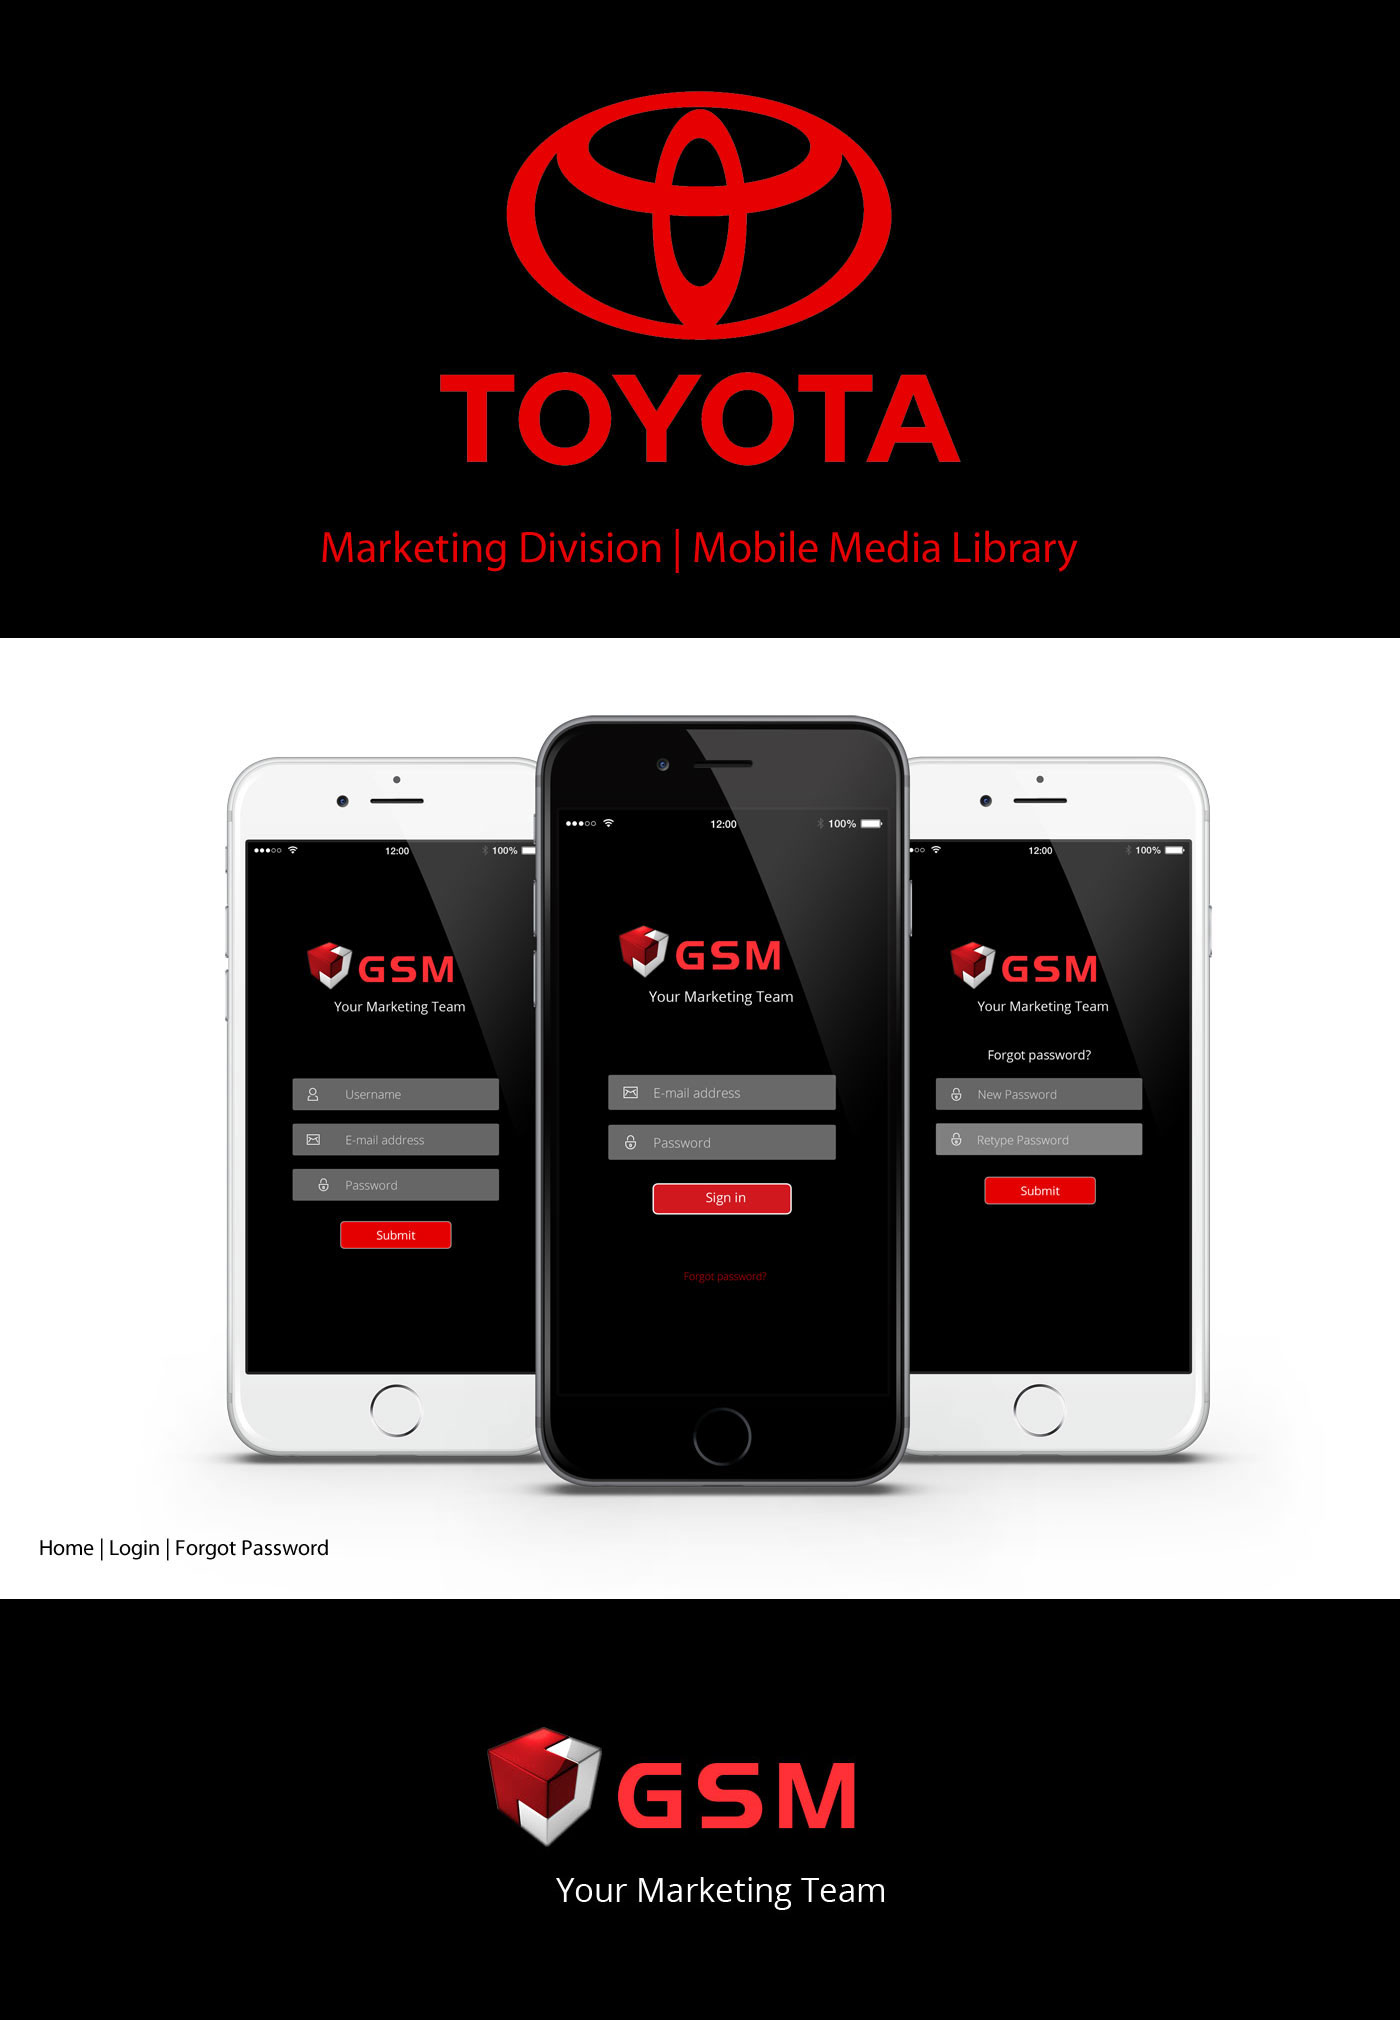 Toyota mobile media library, Joe Fulginiti UX Director, UX Manager